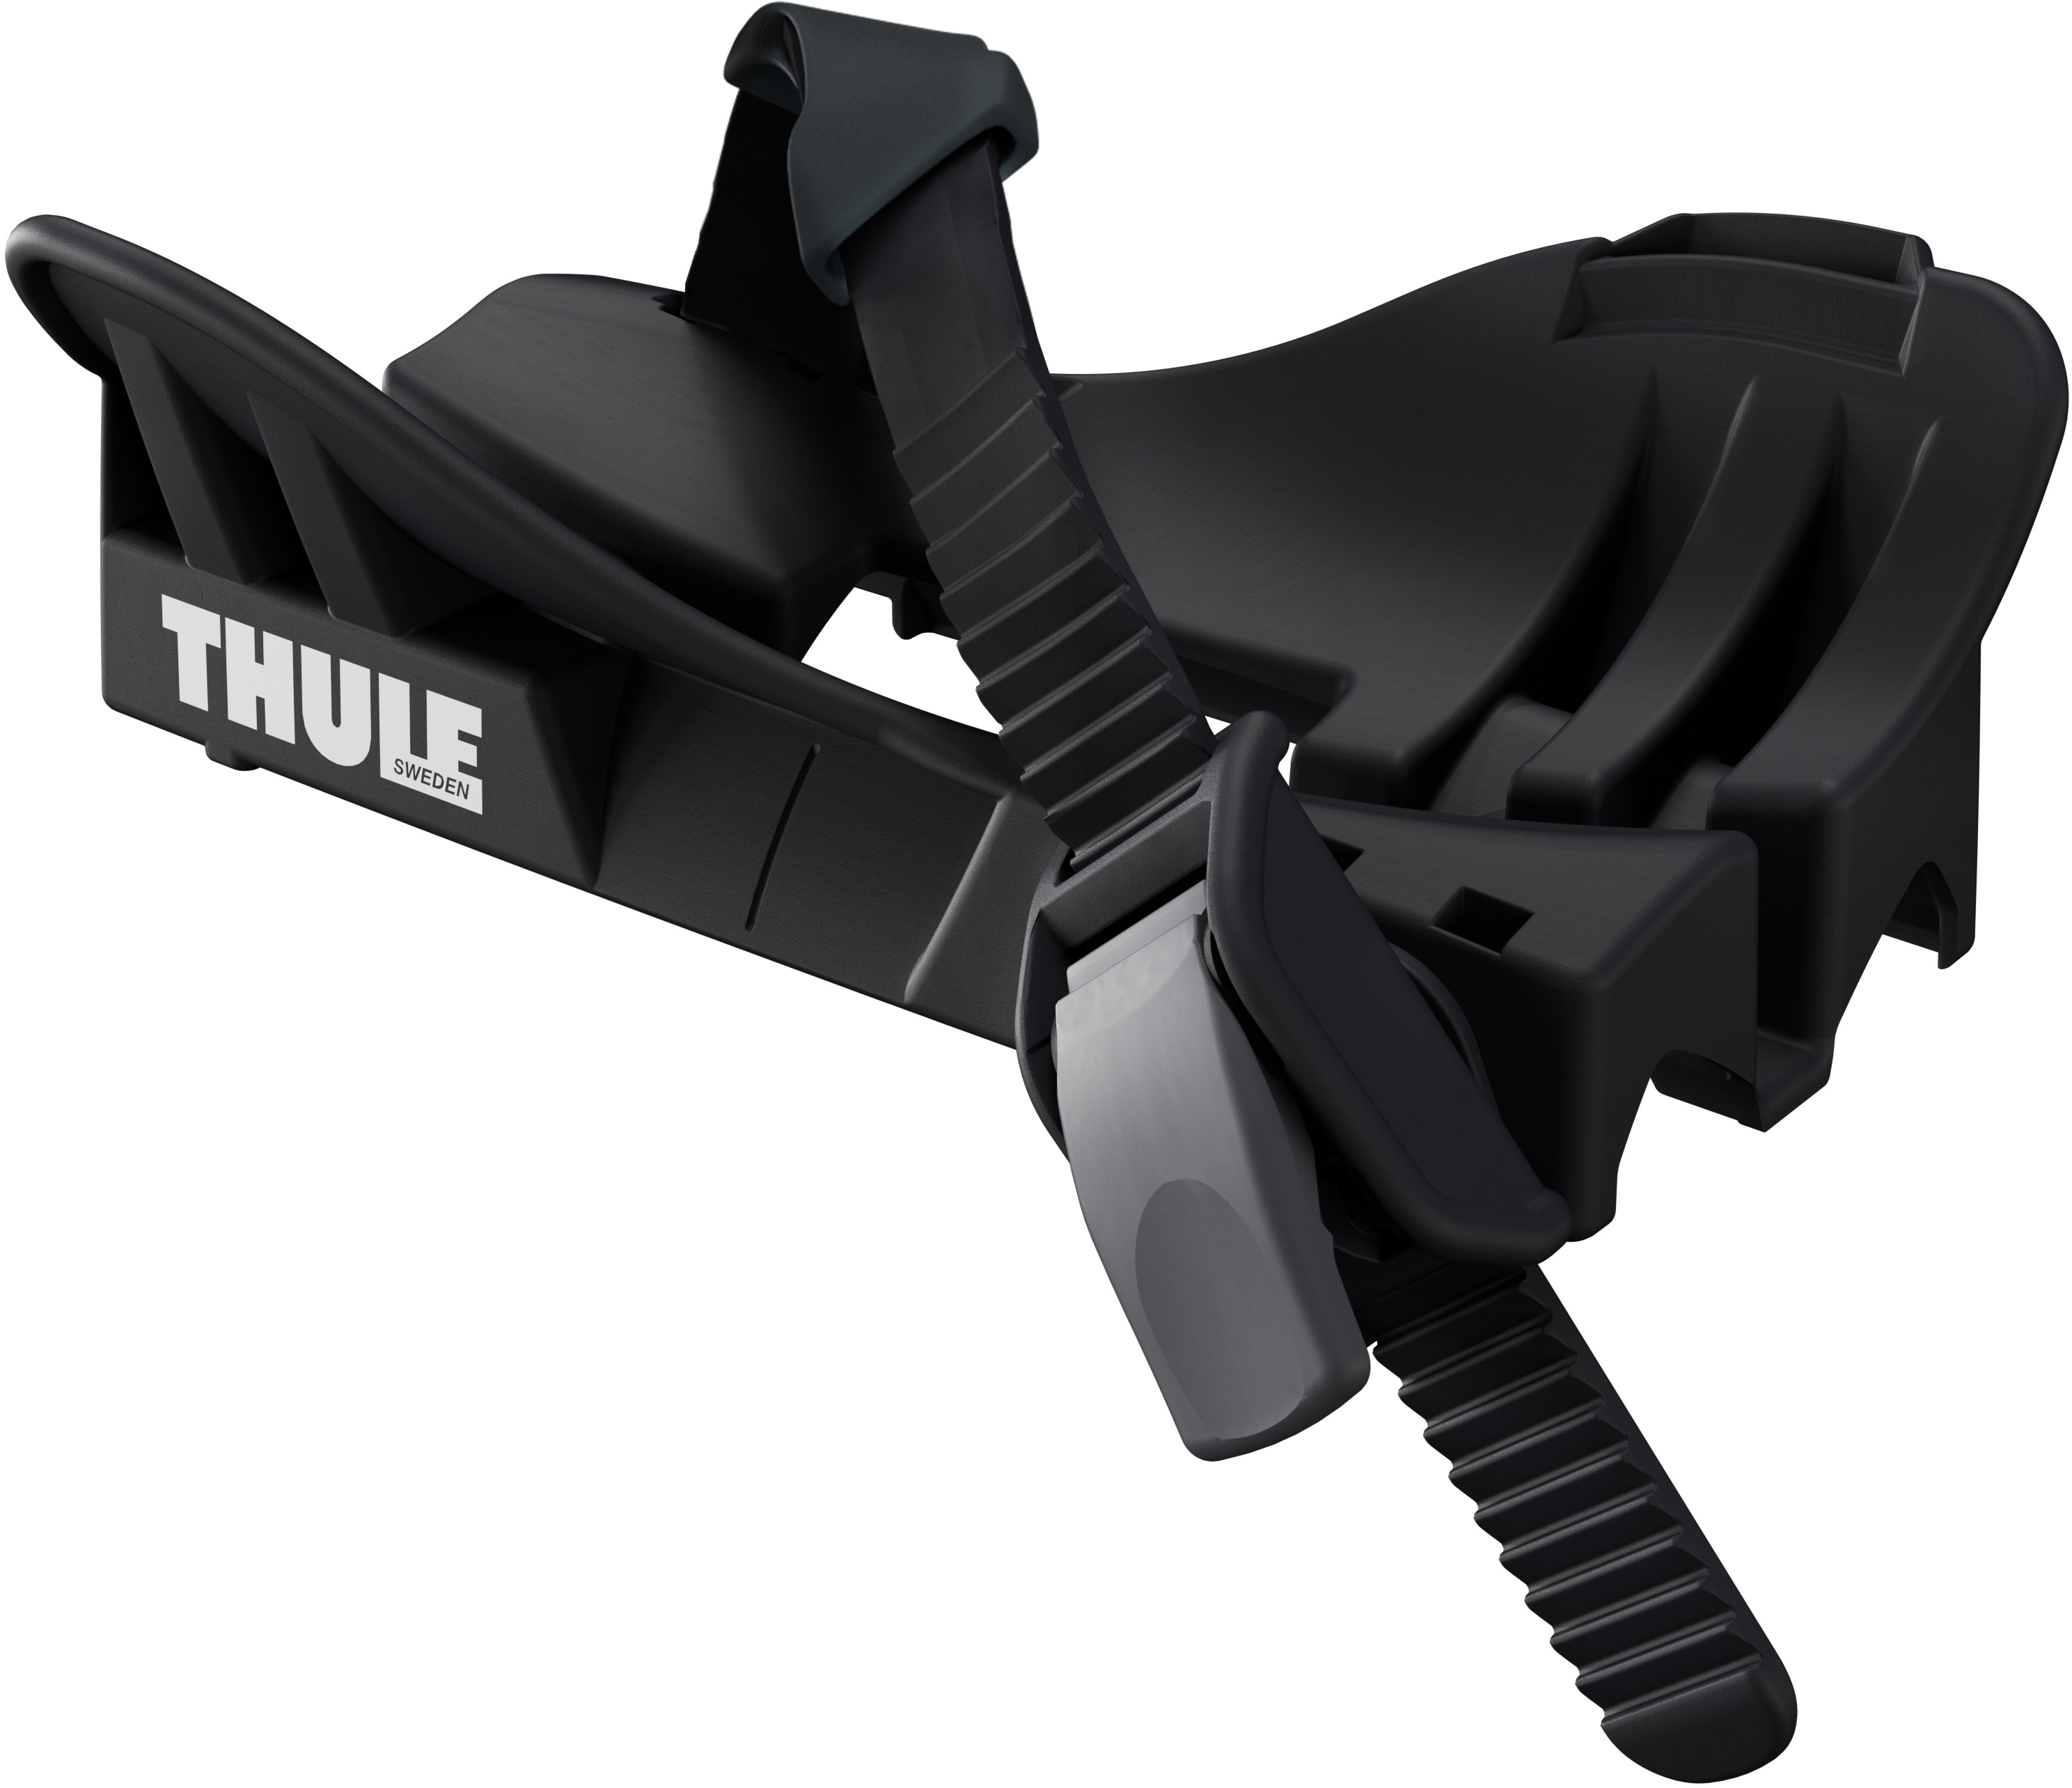 Thule 598 Fat Bike Adapter for598 Proride Carrier